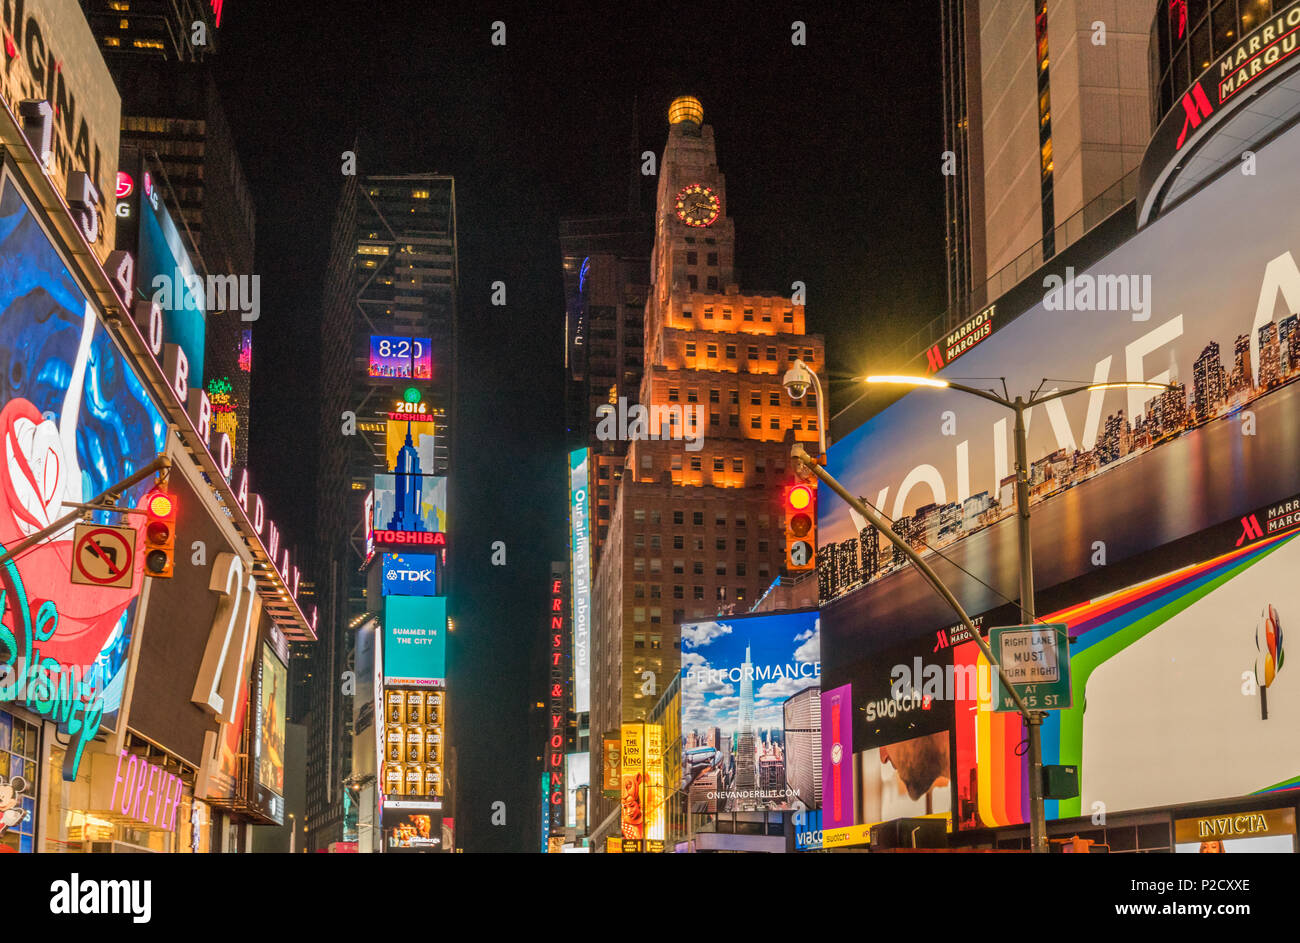 View of the animated and illuminated advertising screens at night in Times Square, Manhattan, New York City Stock Photo